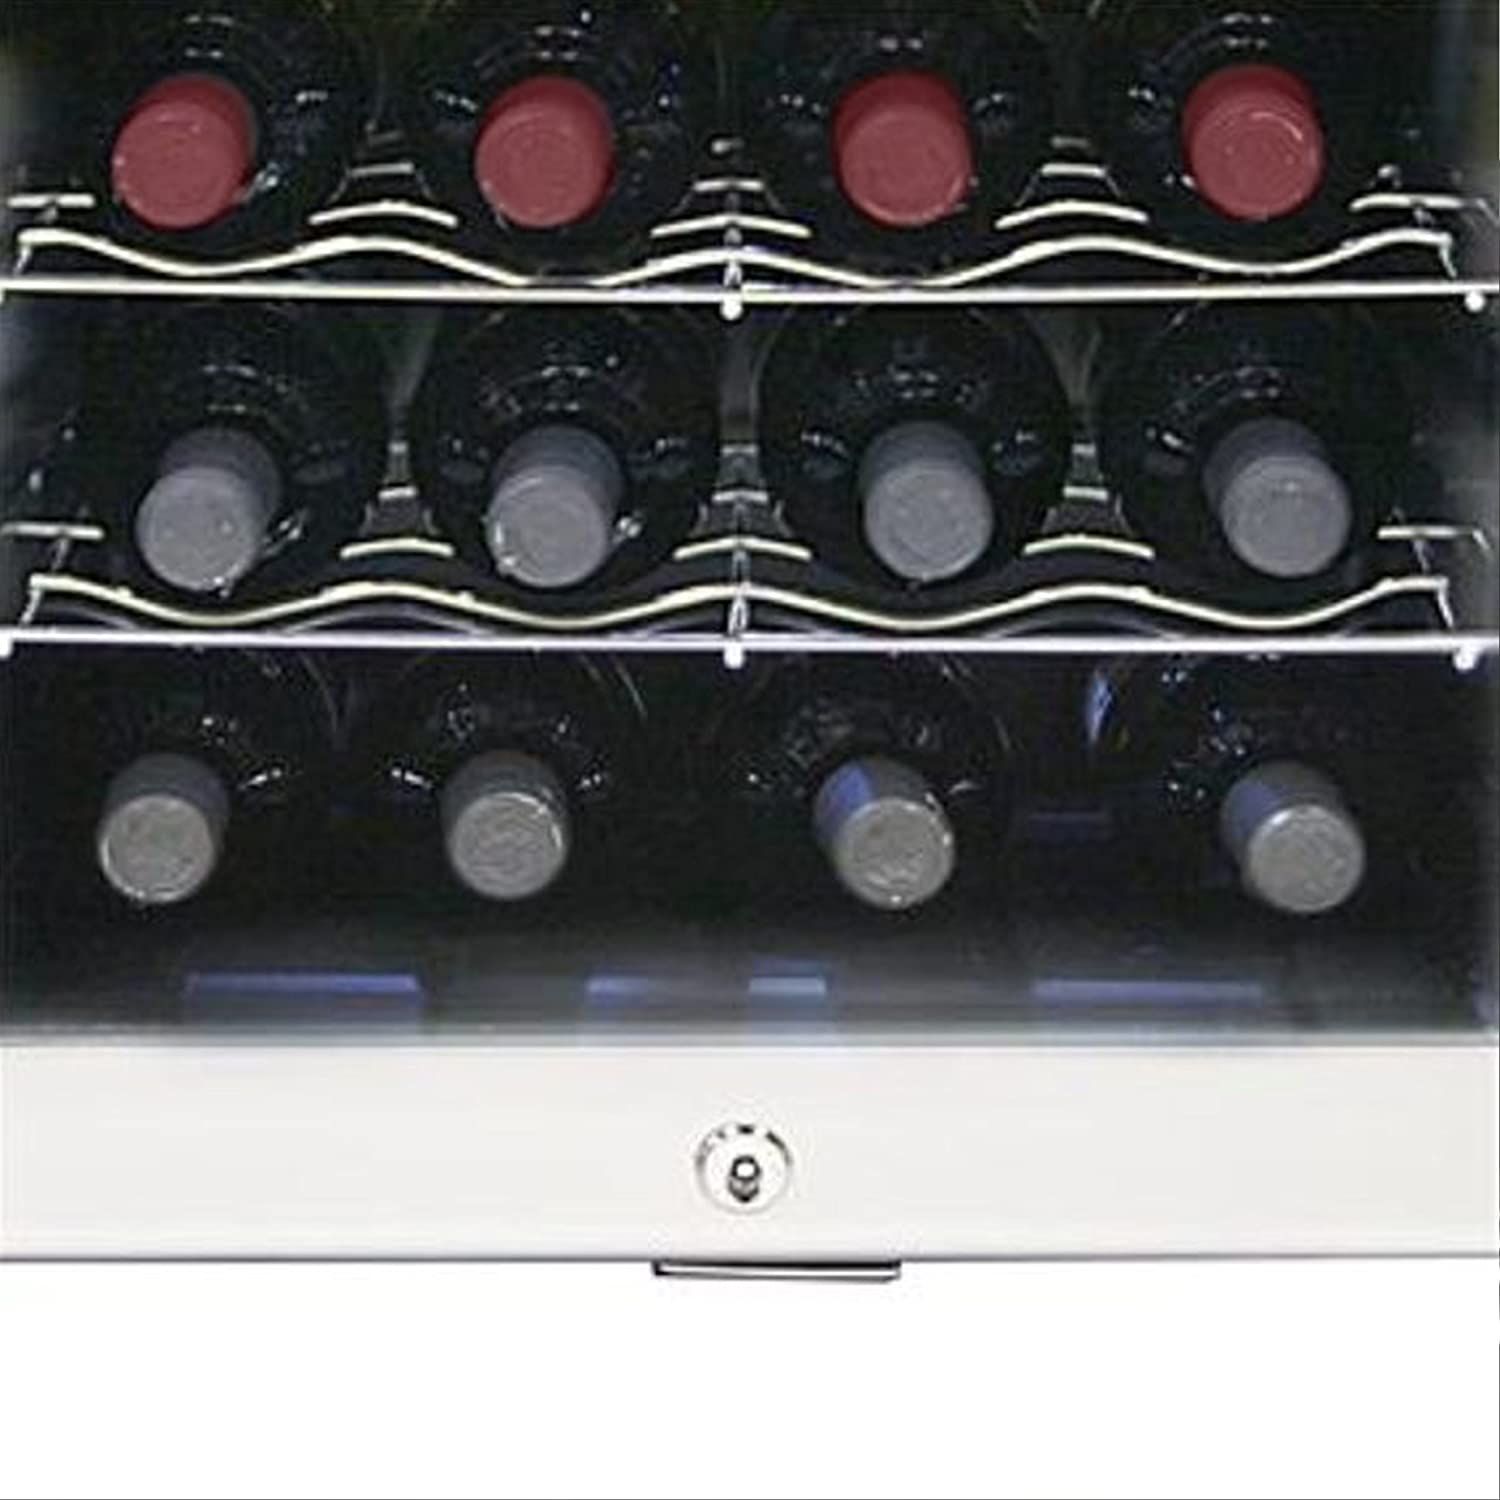 Platinum with Lock Whynter WC-16S SNO 16 Bottle Wine Cooler